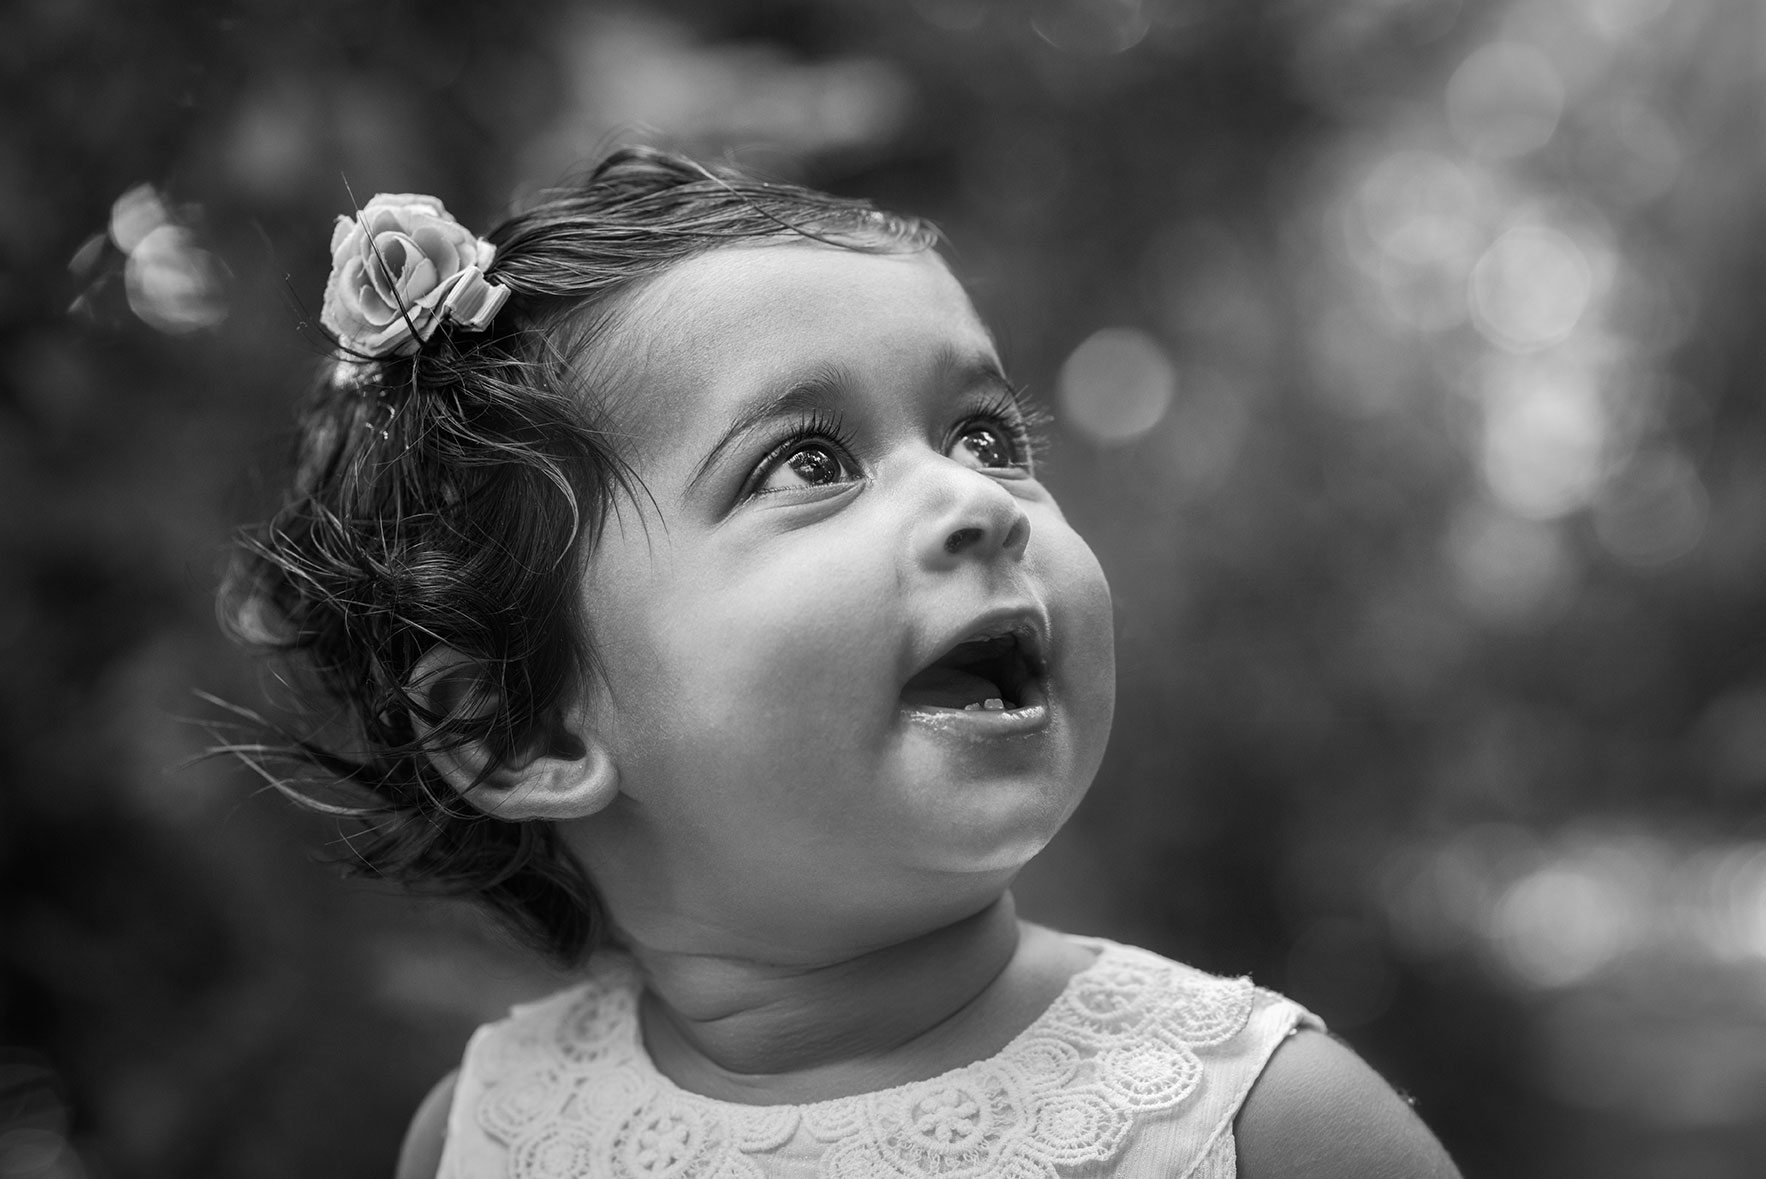 Outdoor photo of baby in black and white sitting side profile in Nowton Park, Bury St Edmunds